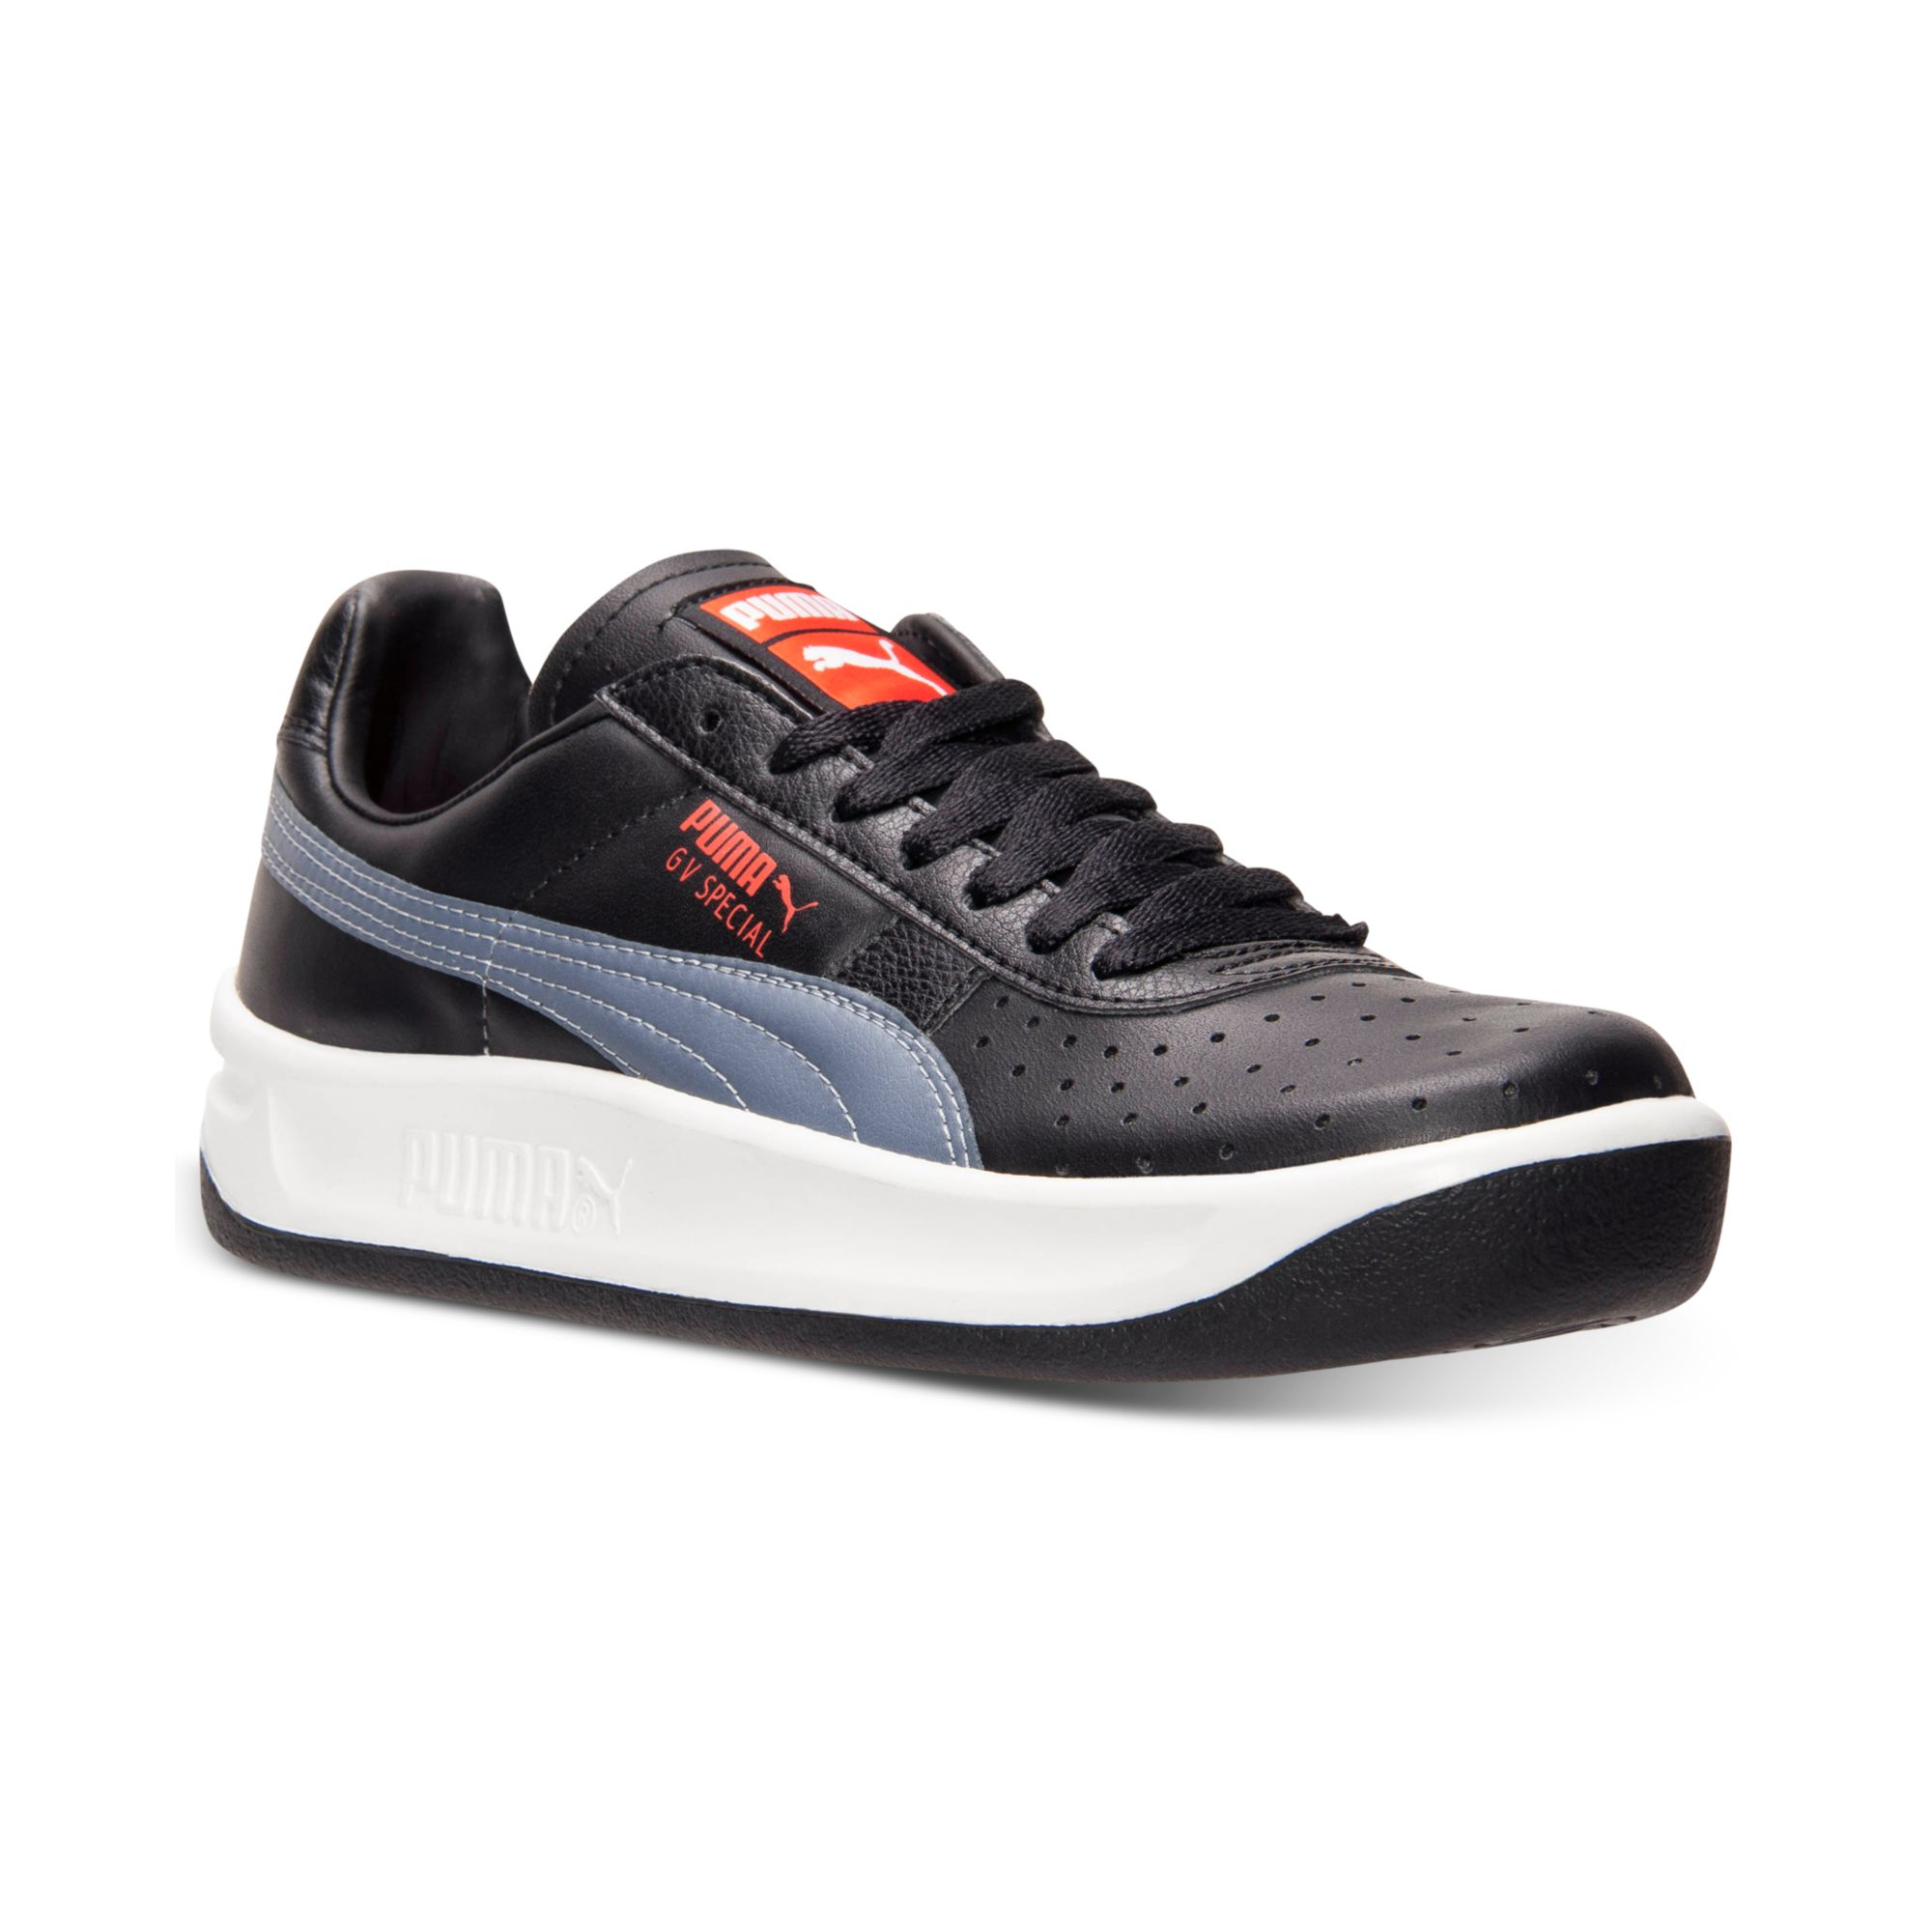 on sale ca010 e7df1 Black Mens The Gv Special Casual Sneakers From Finish Line